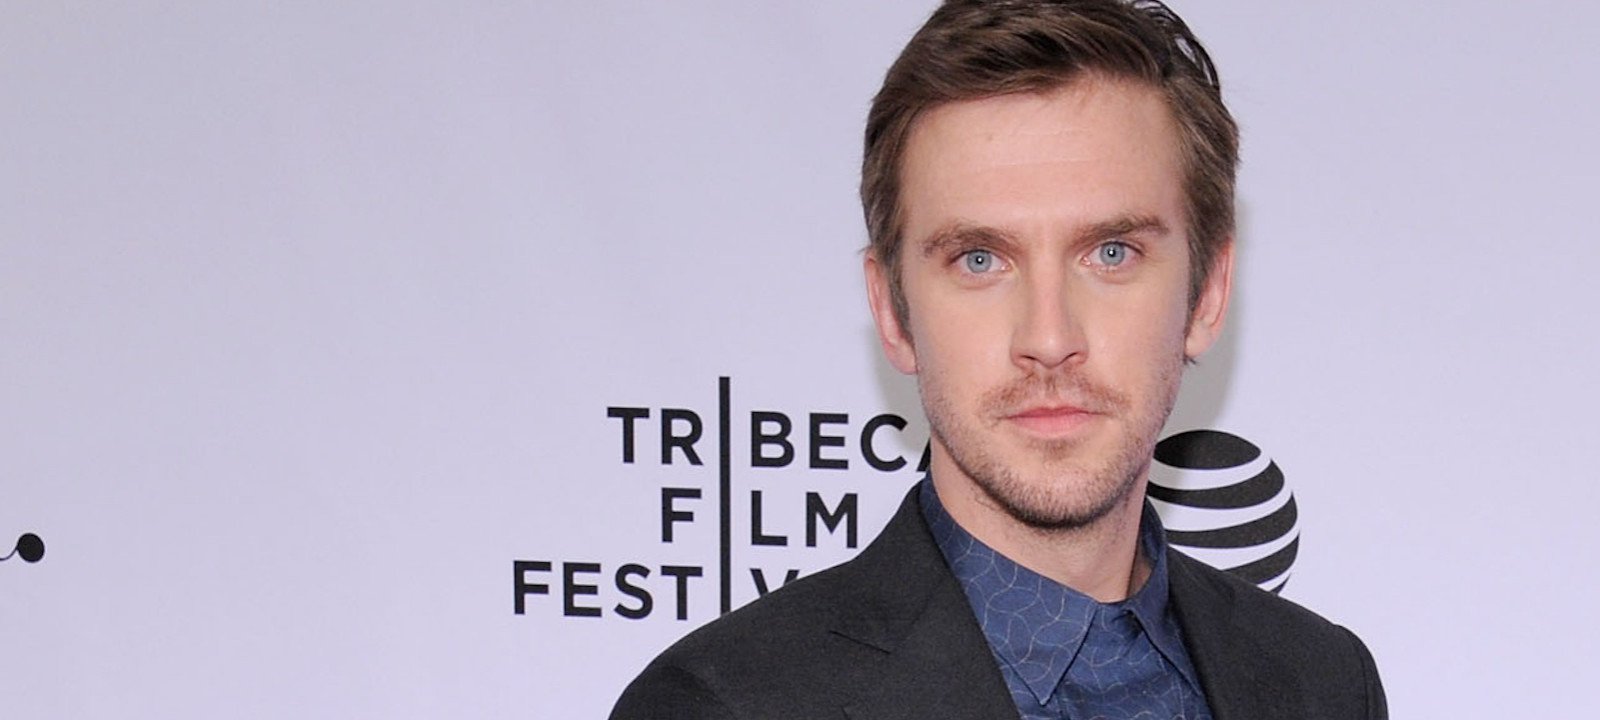 Photo: Matthew Eisman/Getty Images for Tribeca Film Festival): www.bbcamerica.com/anglophenia/2016/08/first-look-dan-stevens-as...